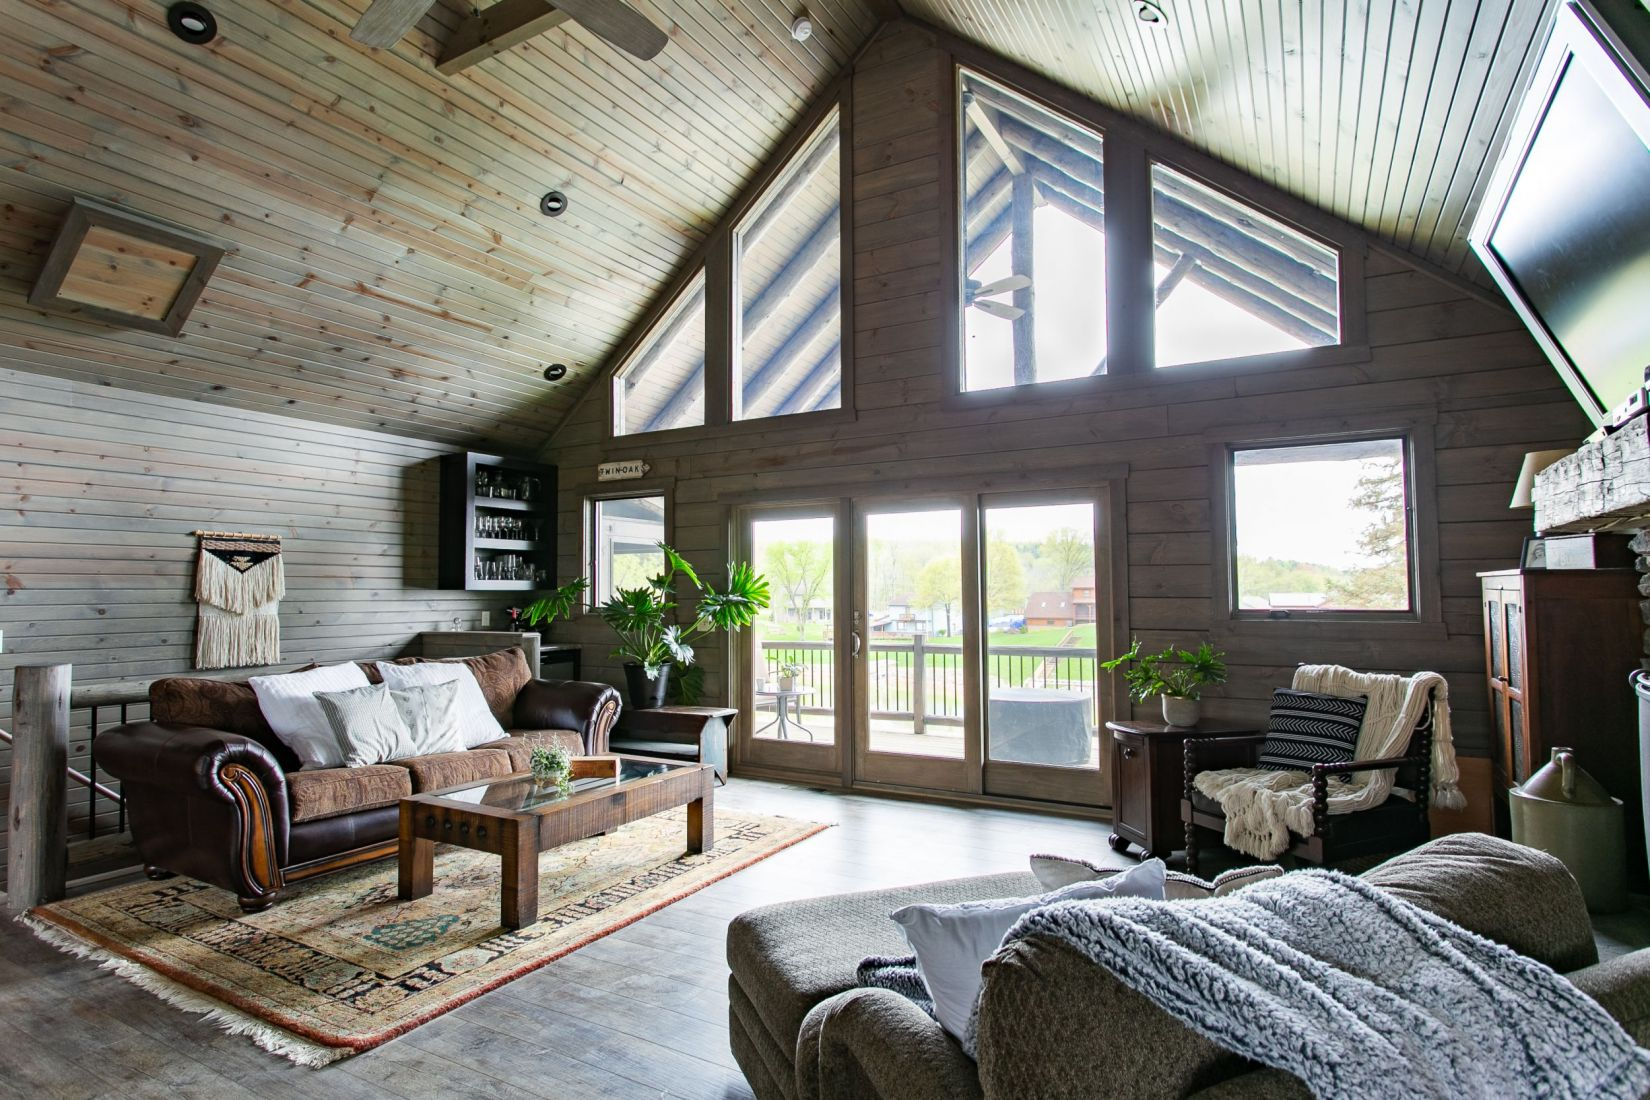 Great Room with Tongue and Groove Barn Siding on Ceiling and Walls